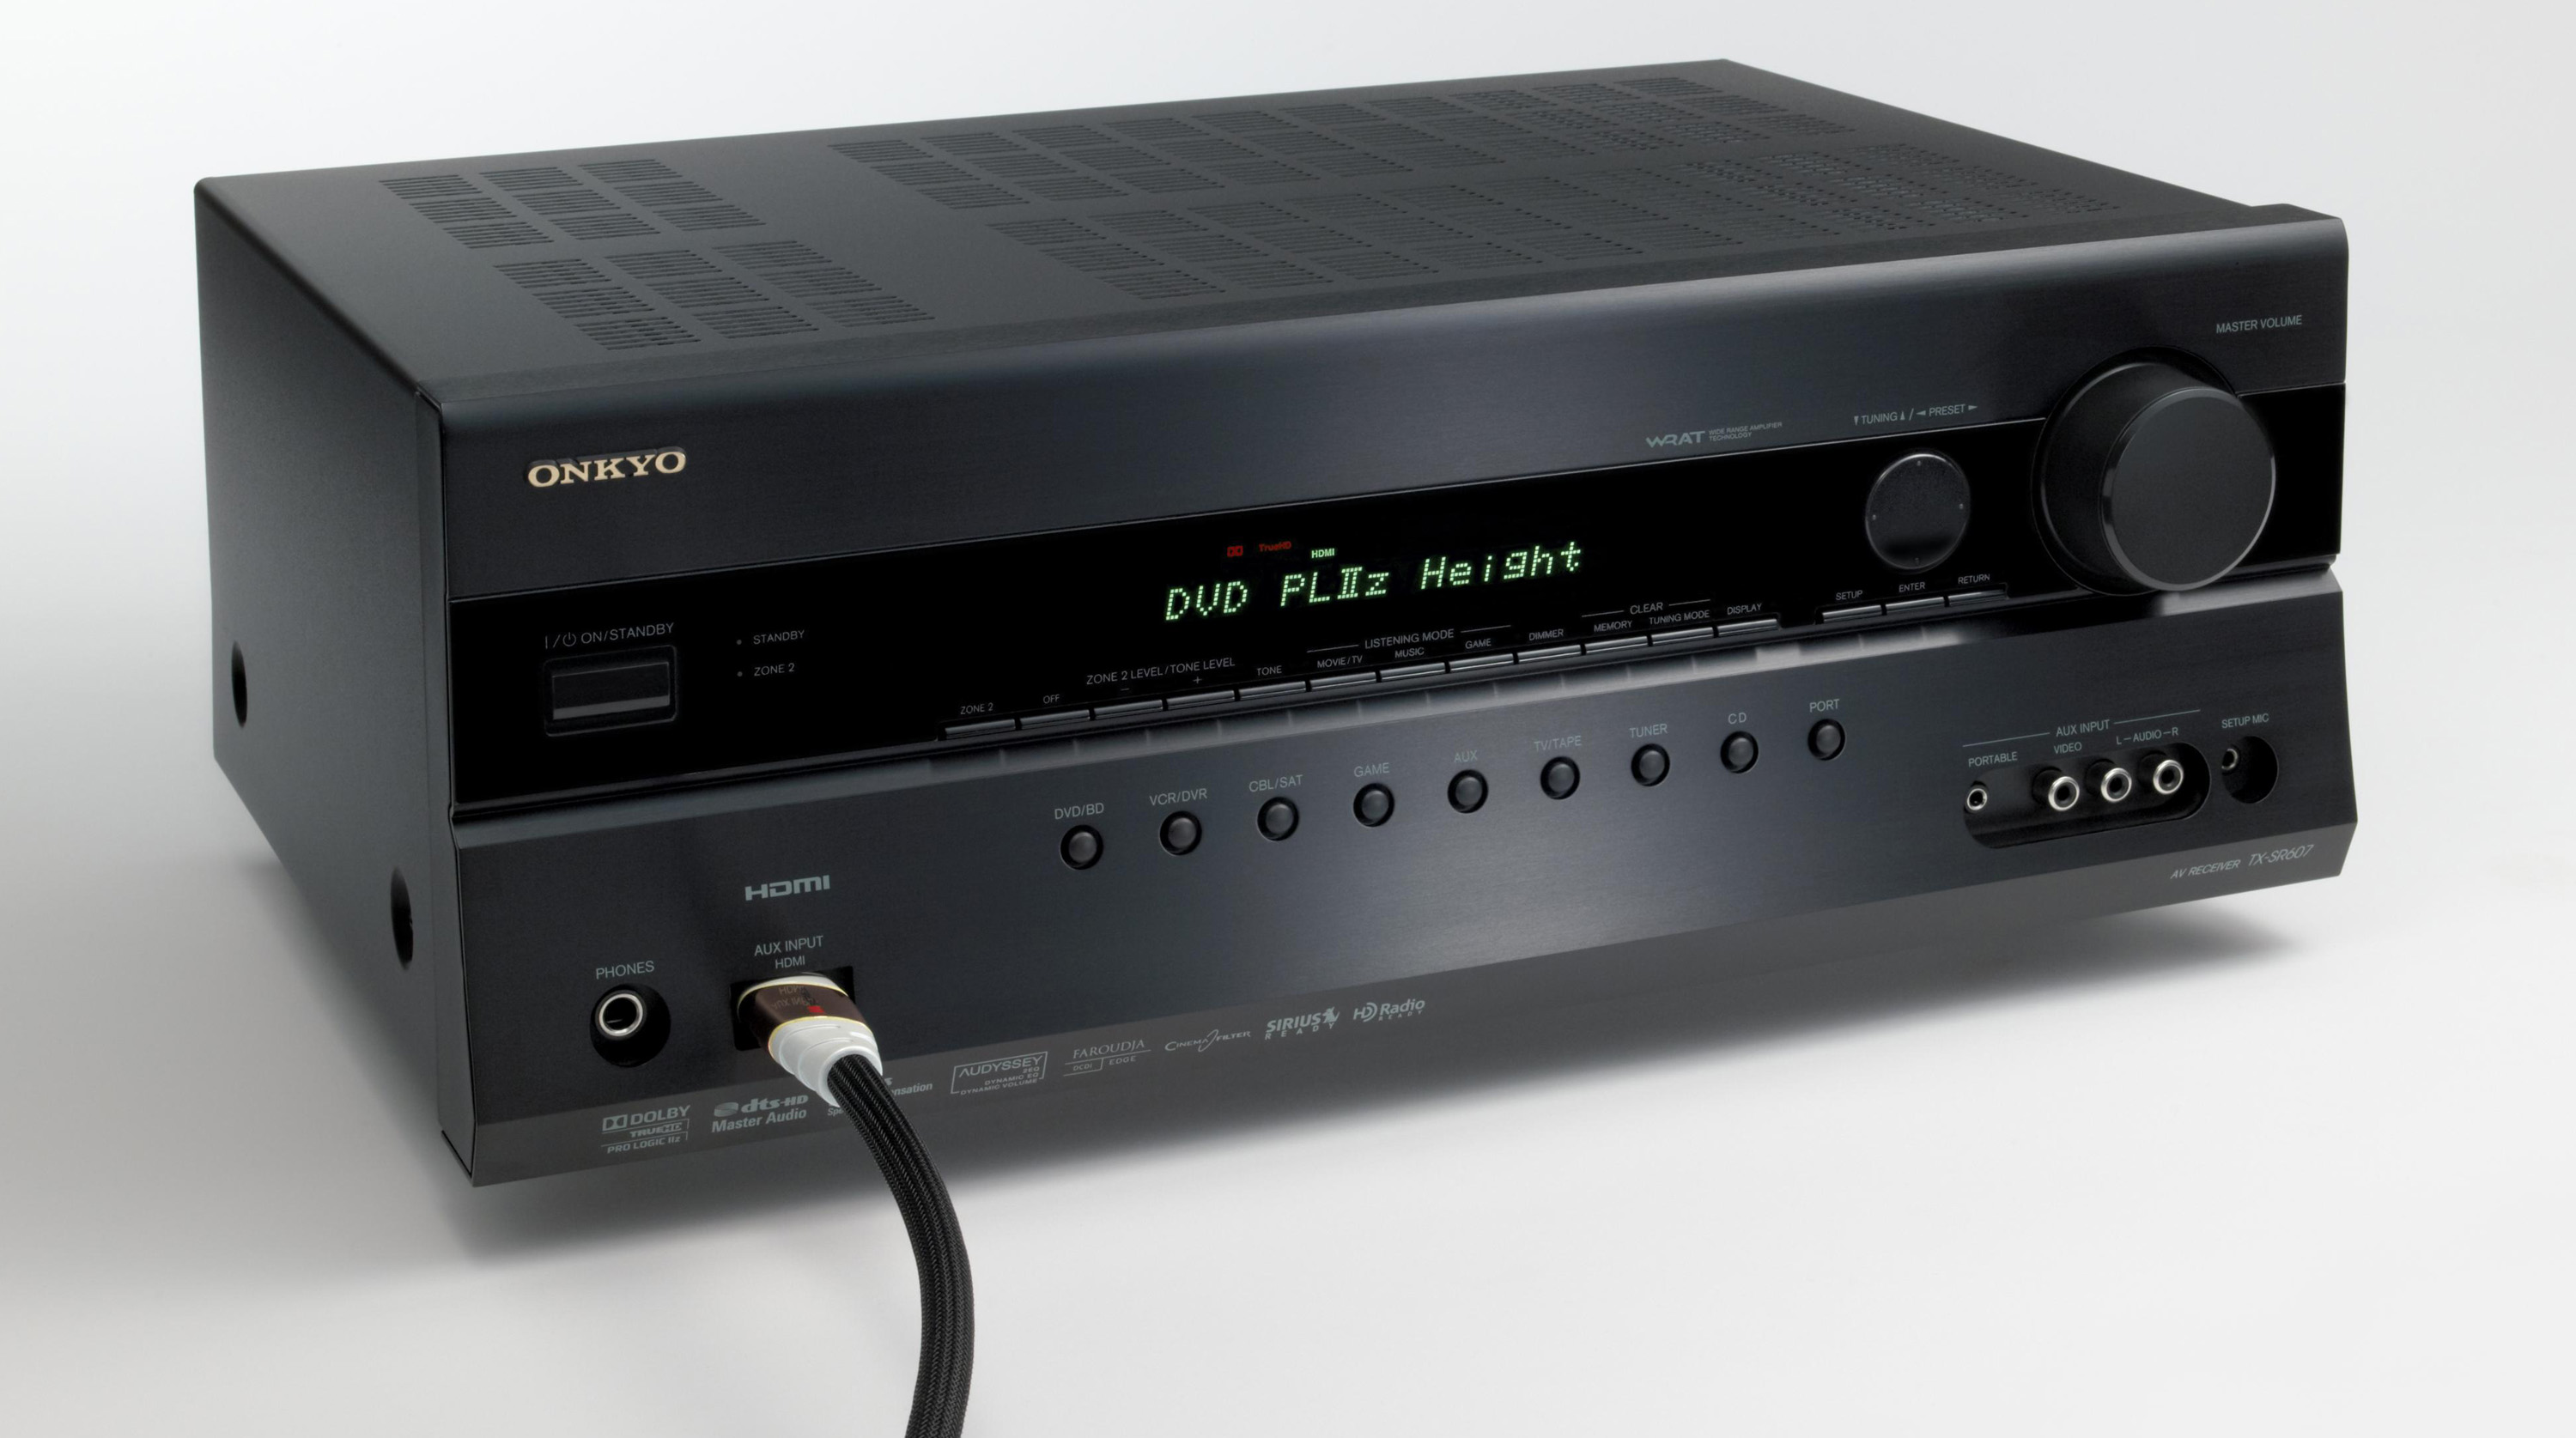 Onkyo intros TX-SR607, world's first AV Receiver with Dobly ProLogic IIz